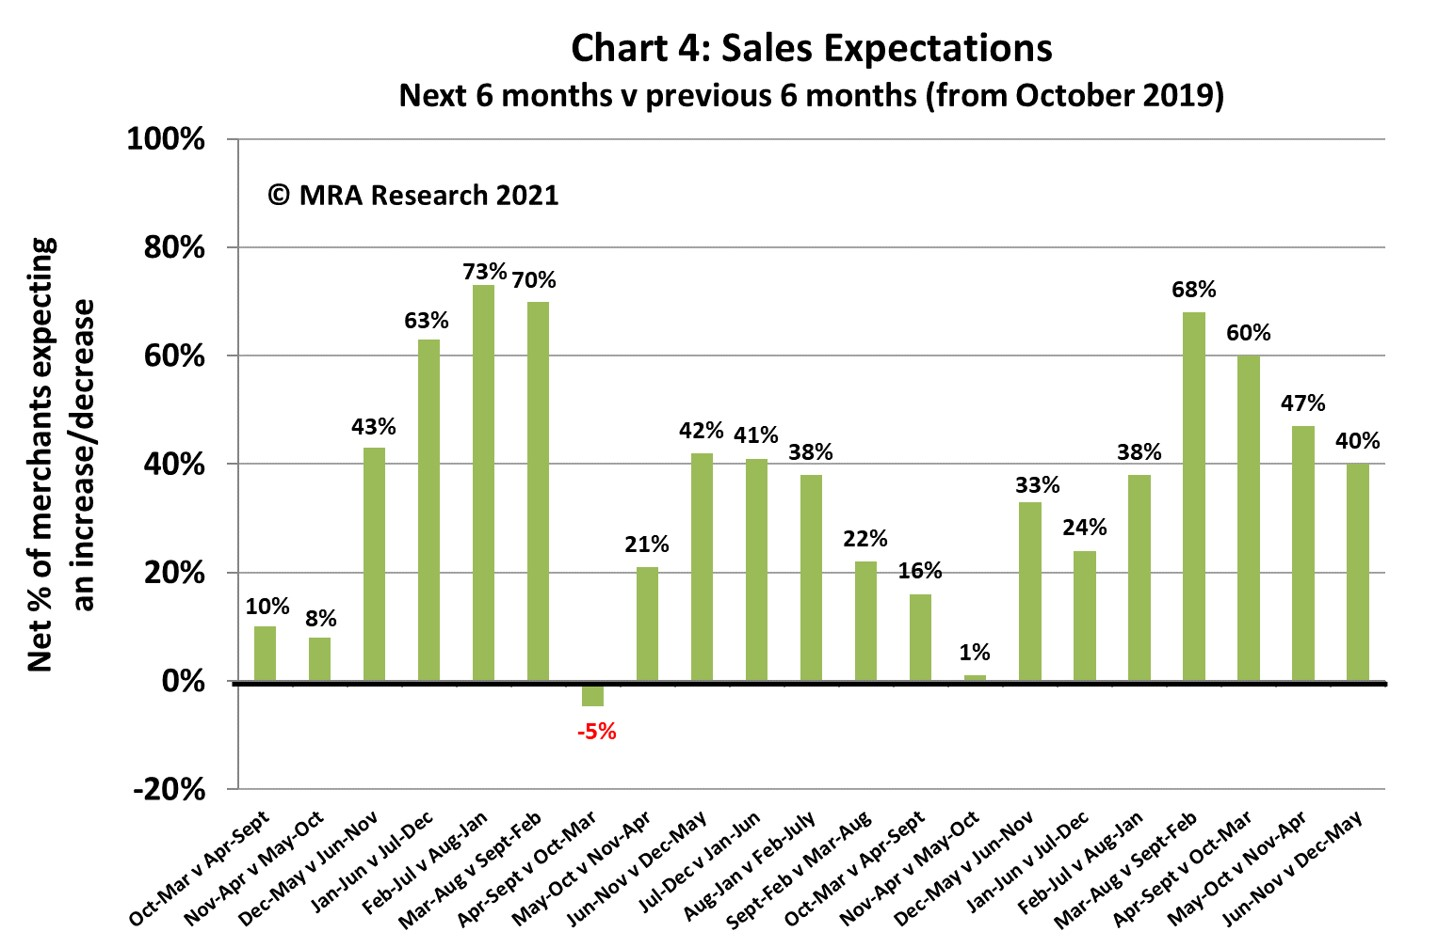 Expectations for the next six months (June-November) are holding well, with a net +40% of merchants forecasting better sales compared to the previous six months (December 20 to May 21)